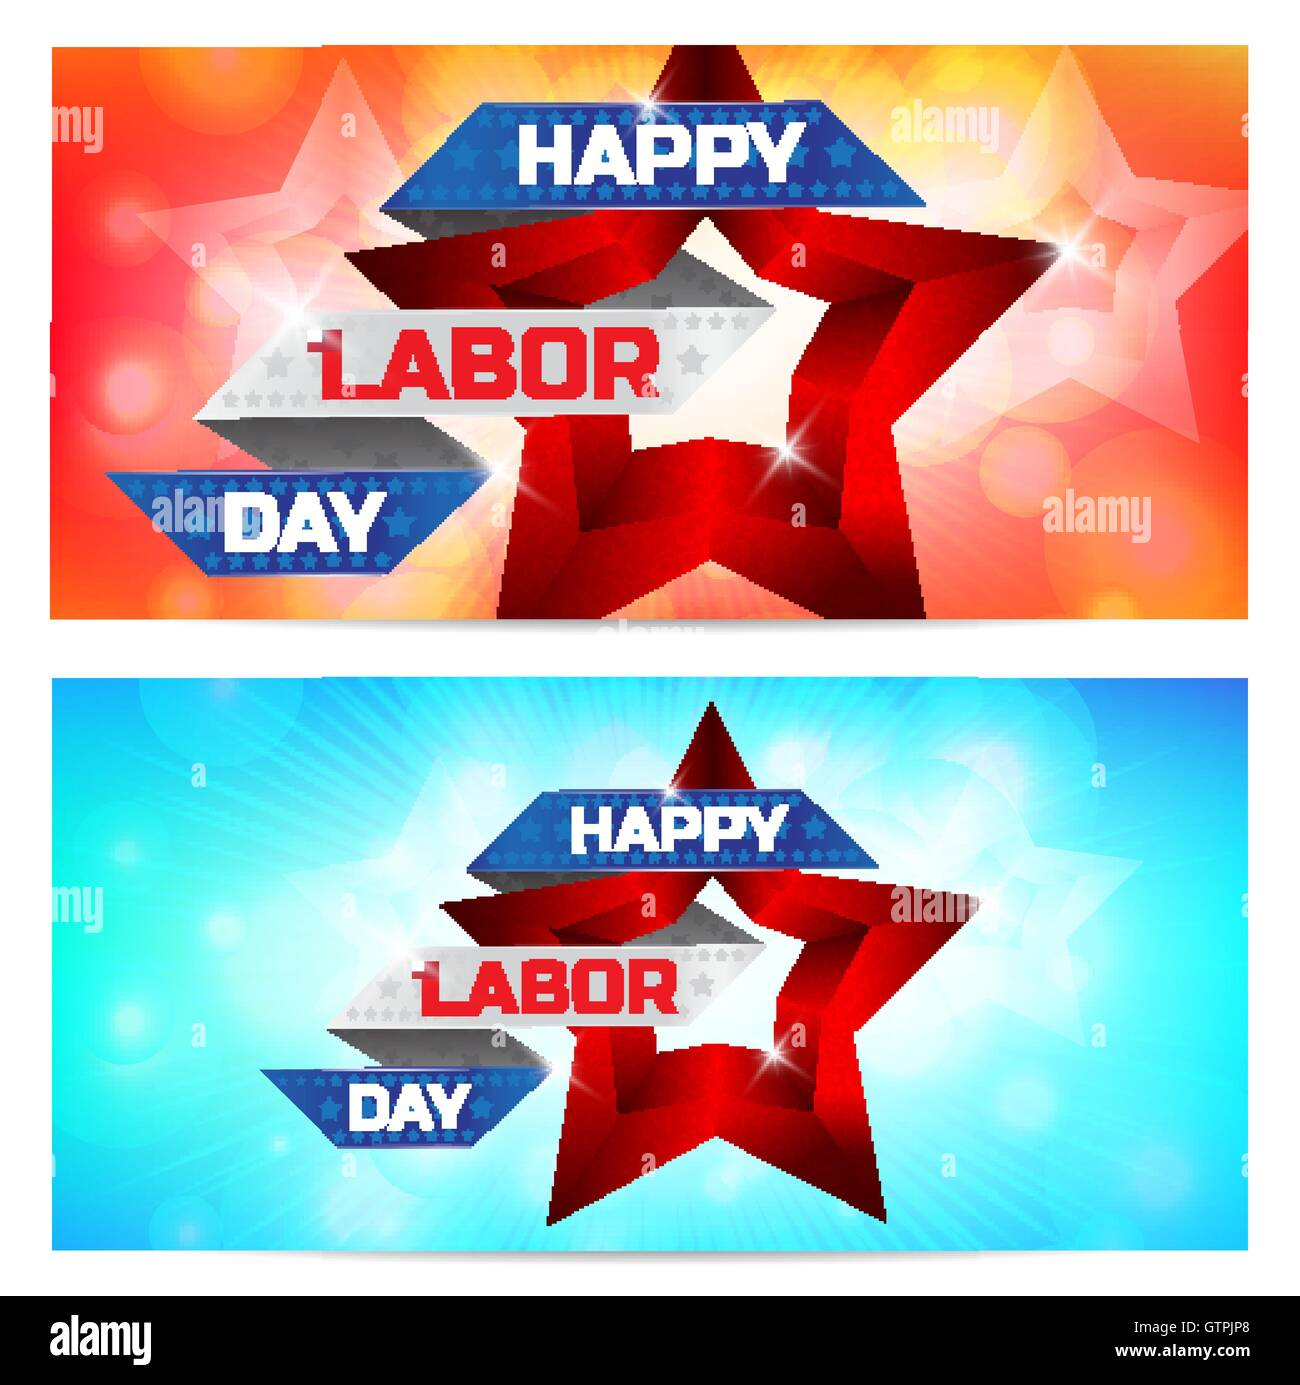 happy labor day greeting card design use this vector illustration